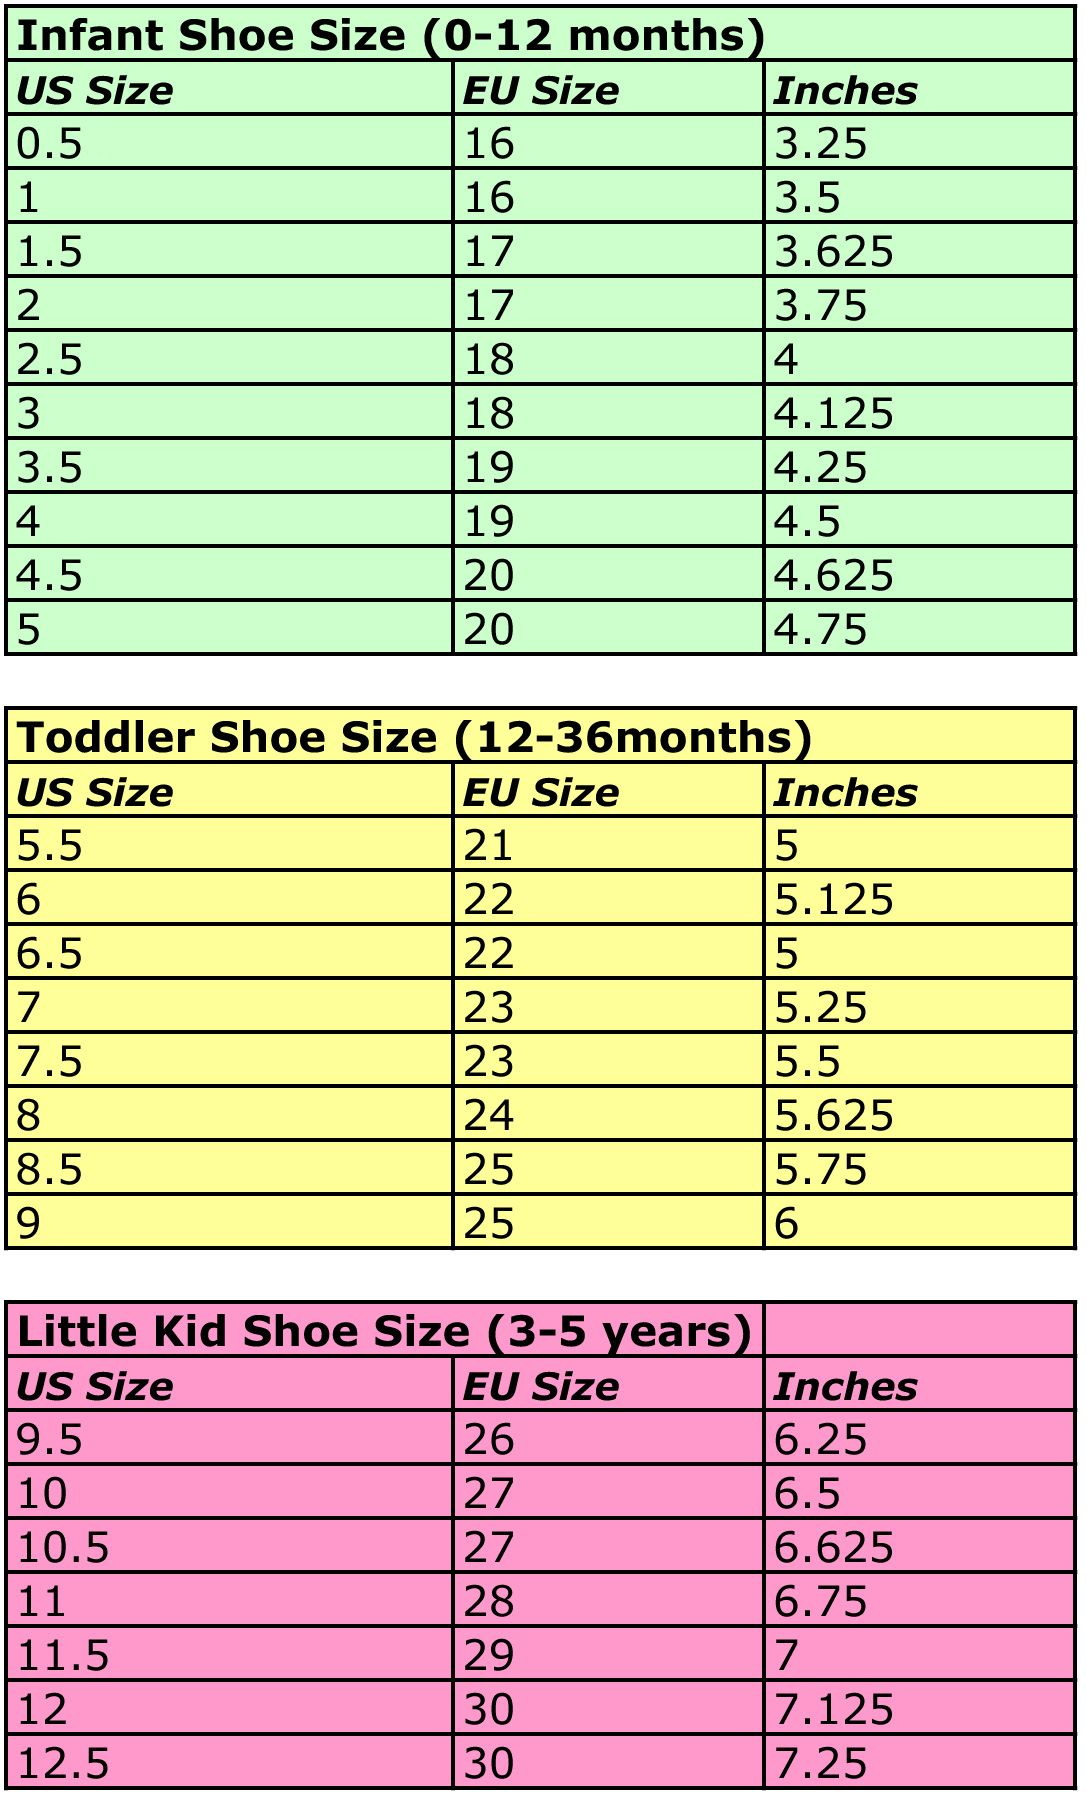 Find great deals on eBay for toddler shoes size 9. Shop with confidence. Skip to main content toddler girl shoes size 9 toddler boy shoes size 9 toddler shoes size 9 boys toddler shoes size 10 toddler size 9 shoes girls toddler shoes size 9 converse toddler shoes size 6 womens Jordan 9 Baby & Toddler US Shoe Size Baby & Toddler Shoes.